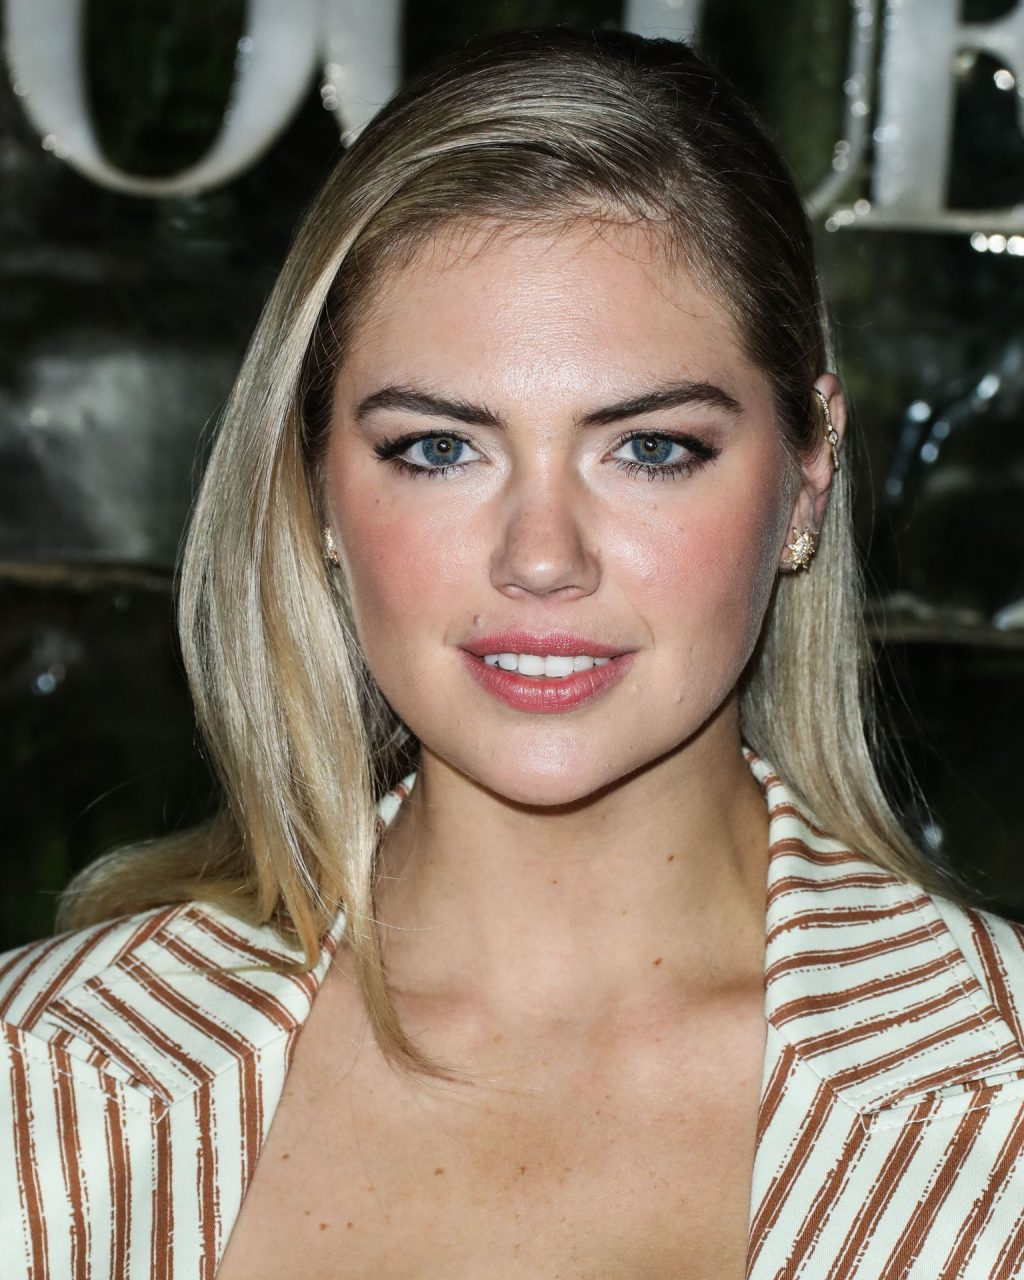 Kate Upton Sexy The Fappening Blog 21 1024x1280 - Kate Upton Attends Canada Goose And Vogue Cocktails & Conversations (104 Photos)